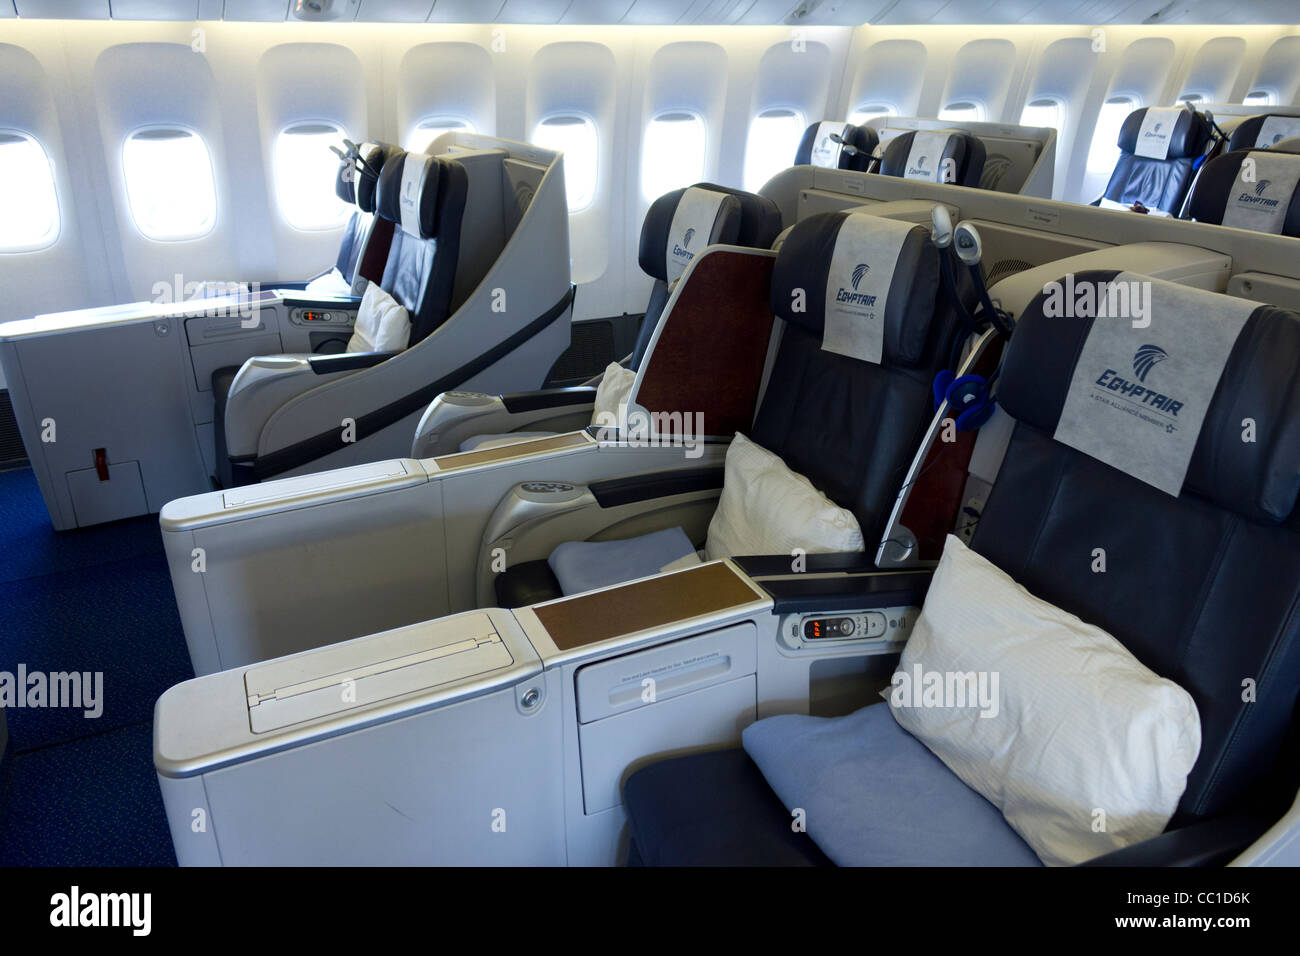 Egypt Air business class cabin, Boeing 777 - Stock Image